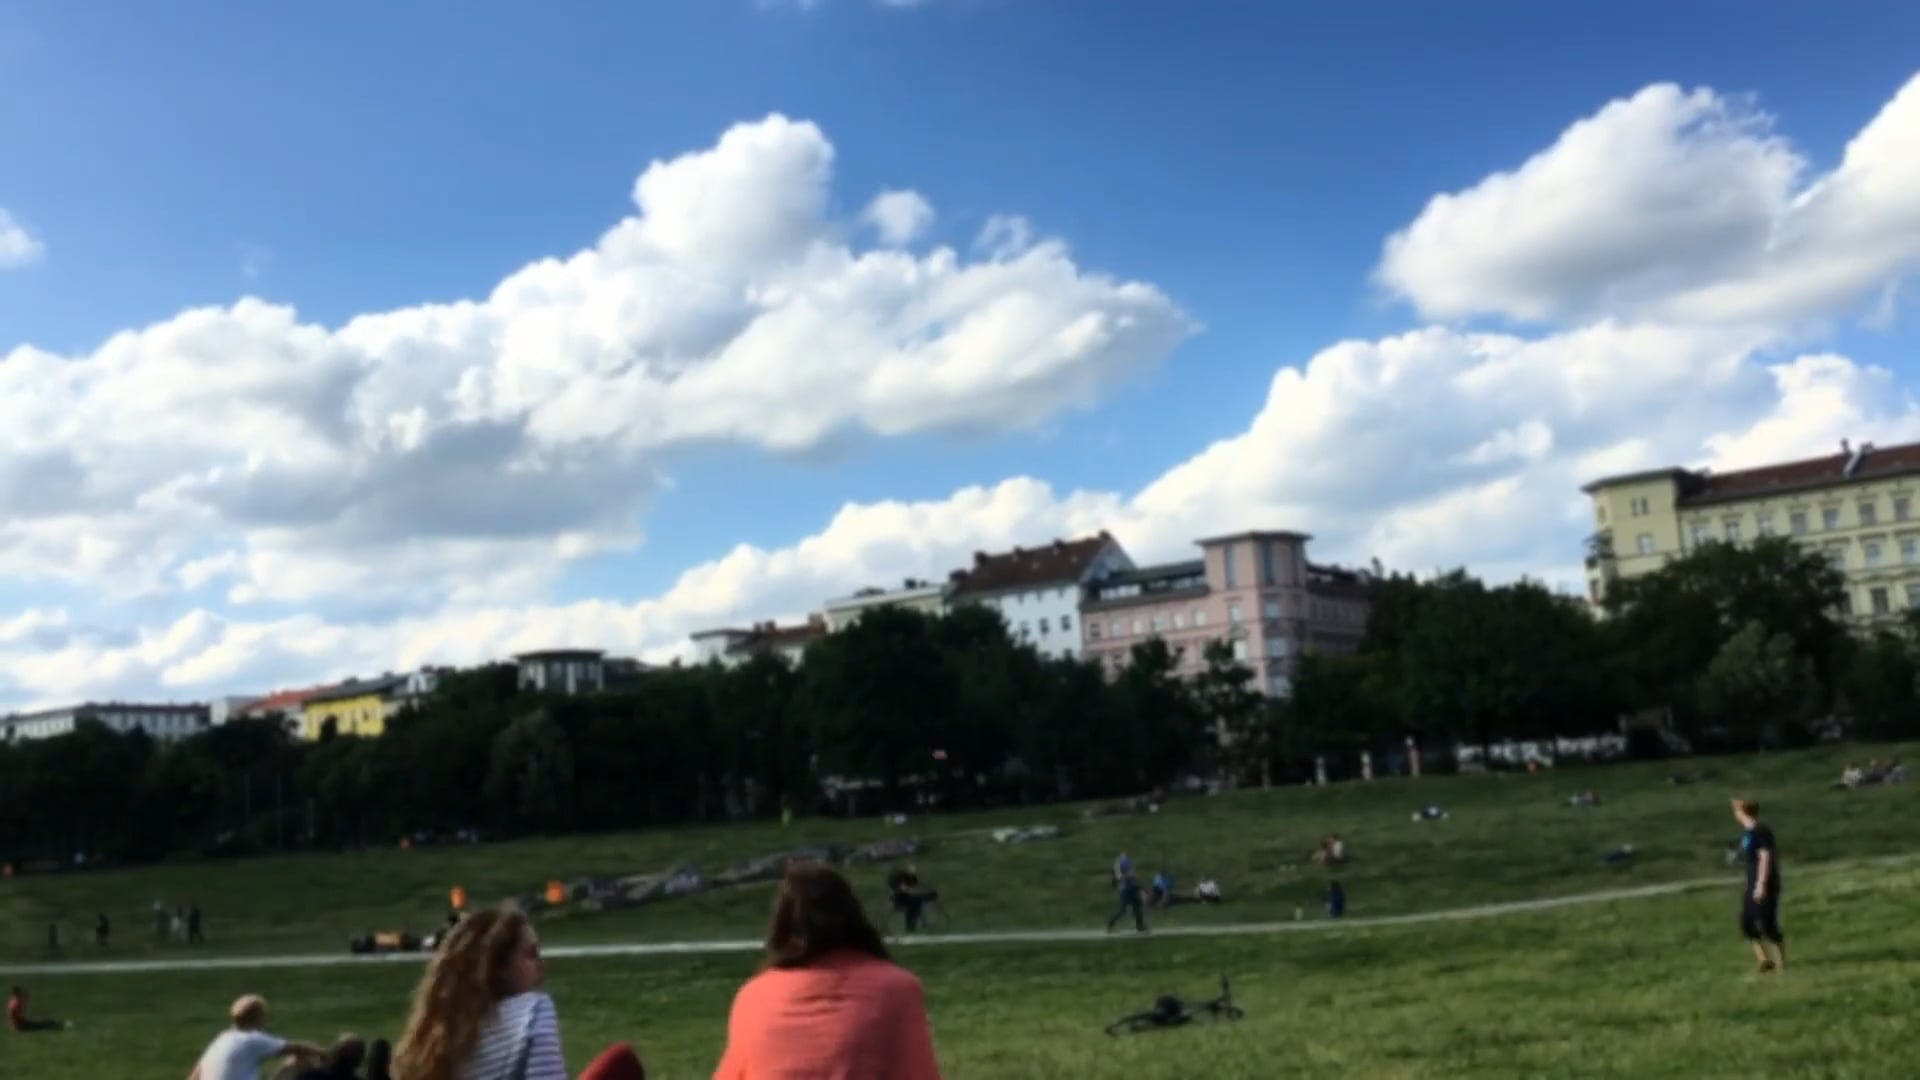 Time Lapse Video Of People Relaxing In The Field